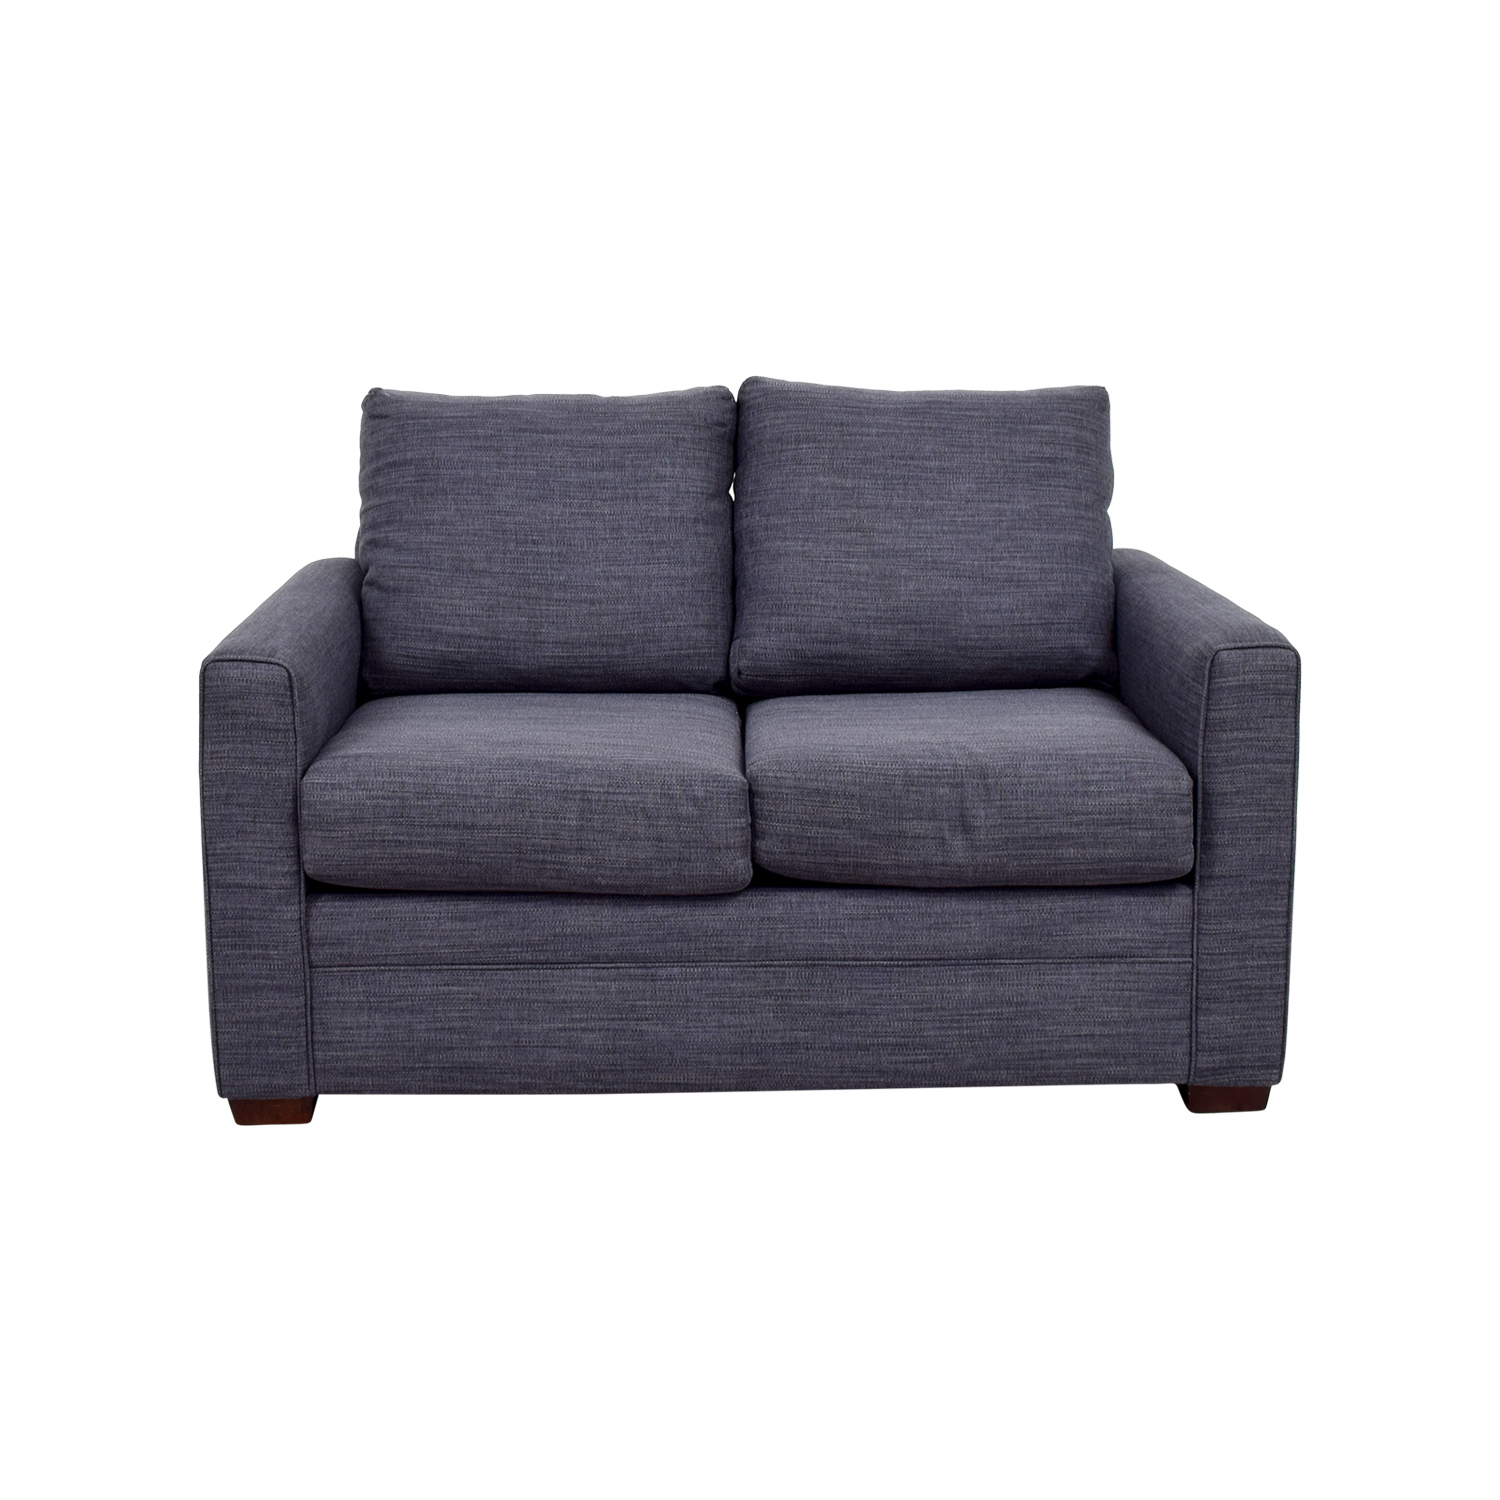 Sensational 34 Off Bobs Discount Furniture Bobs Furniture Navy Blue Love Seat Sofas Ibusinesslaw Wood Chair Design Ideas Ibusinesslaworg